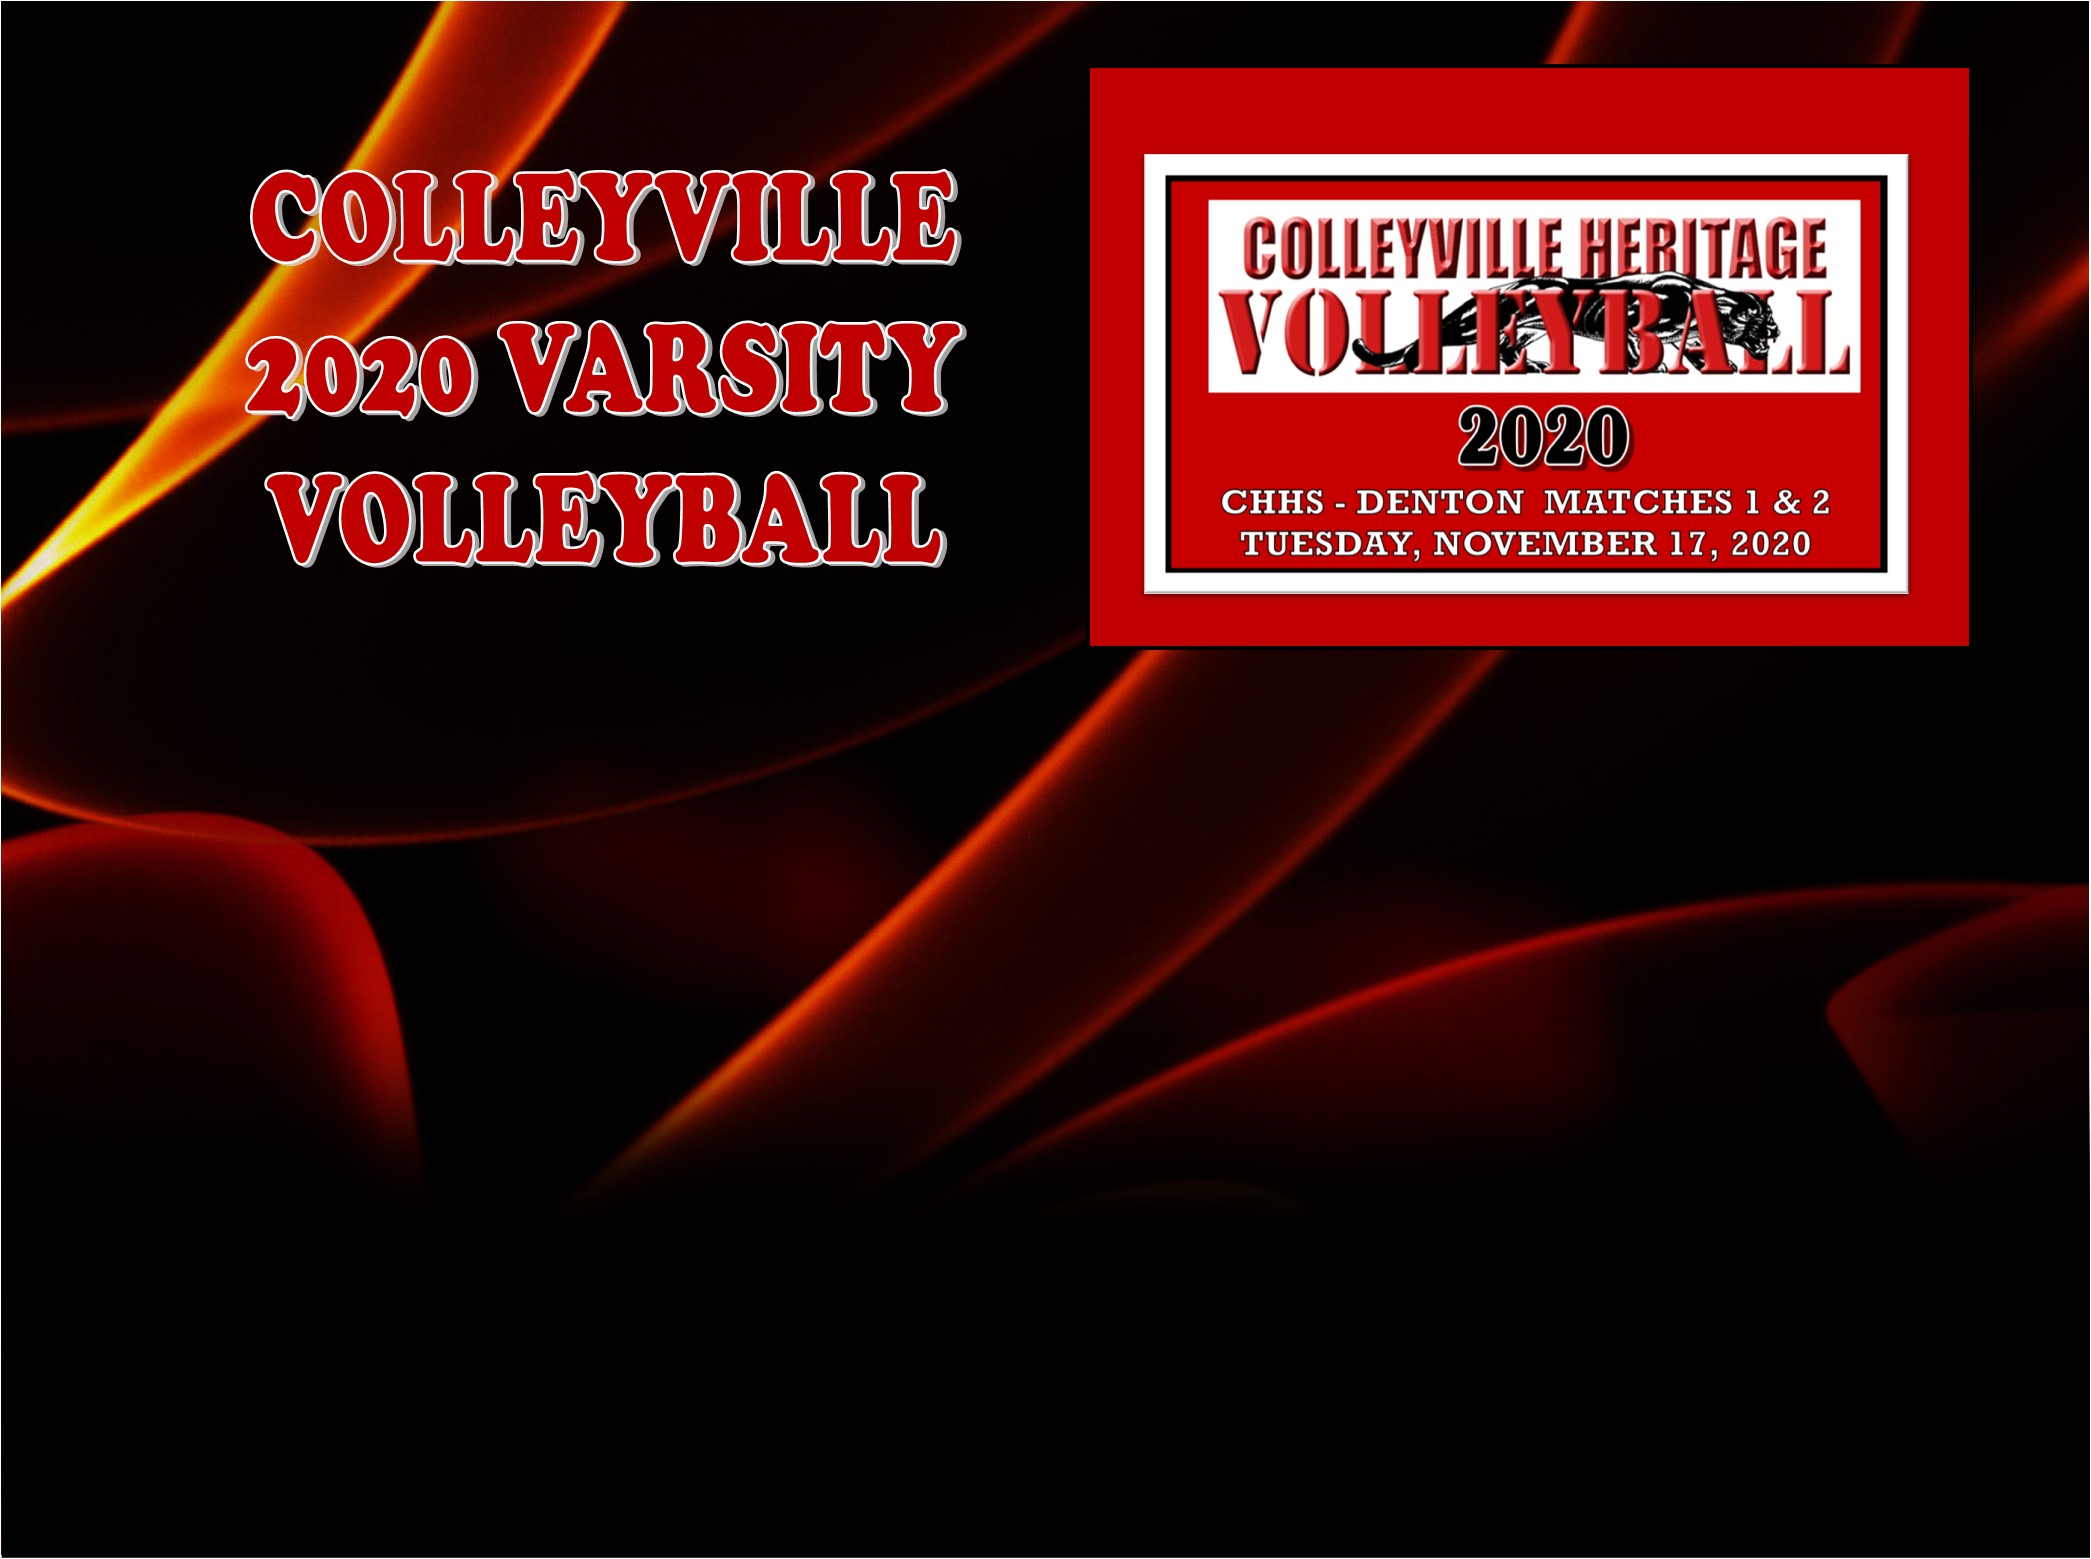 GCISD Volleyball: Colleyville Lady Panthers Split Double Header With Denton Lady Broncos